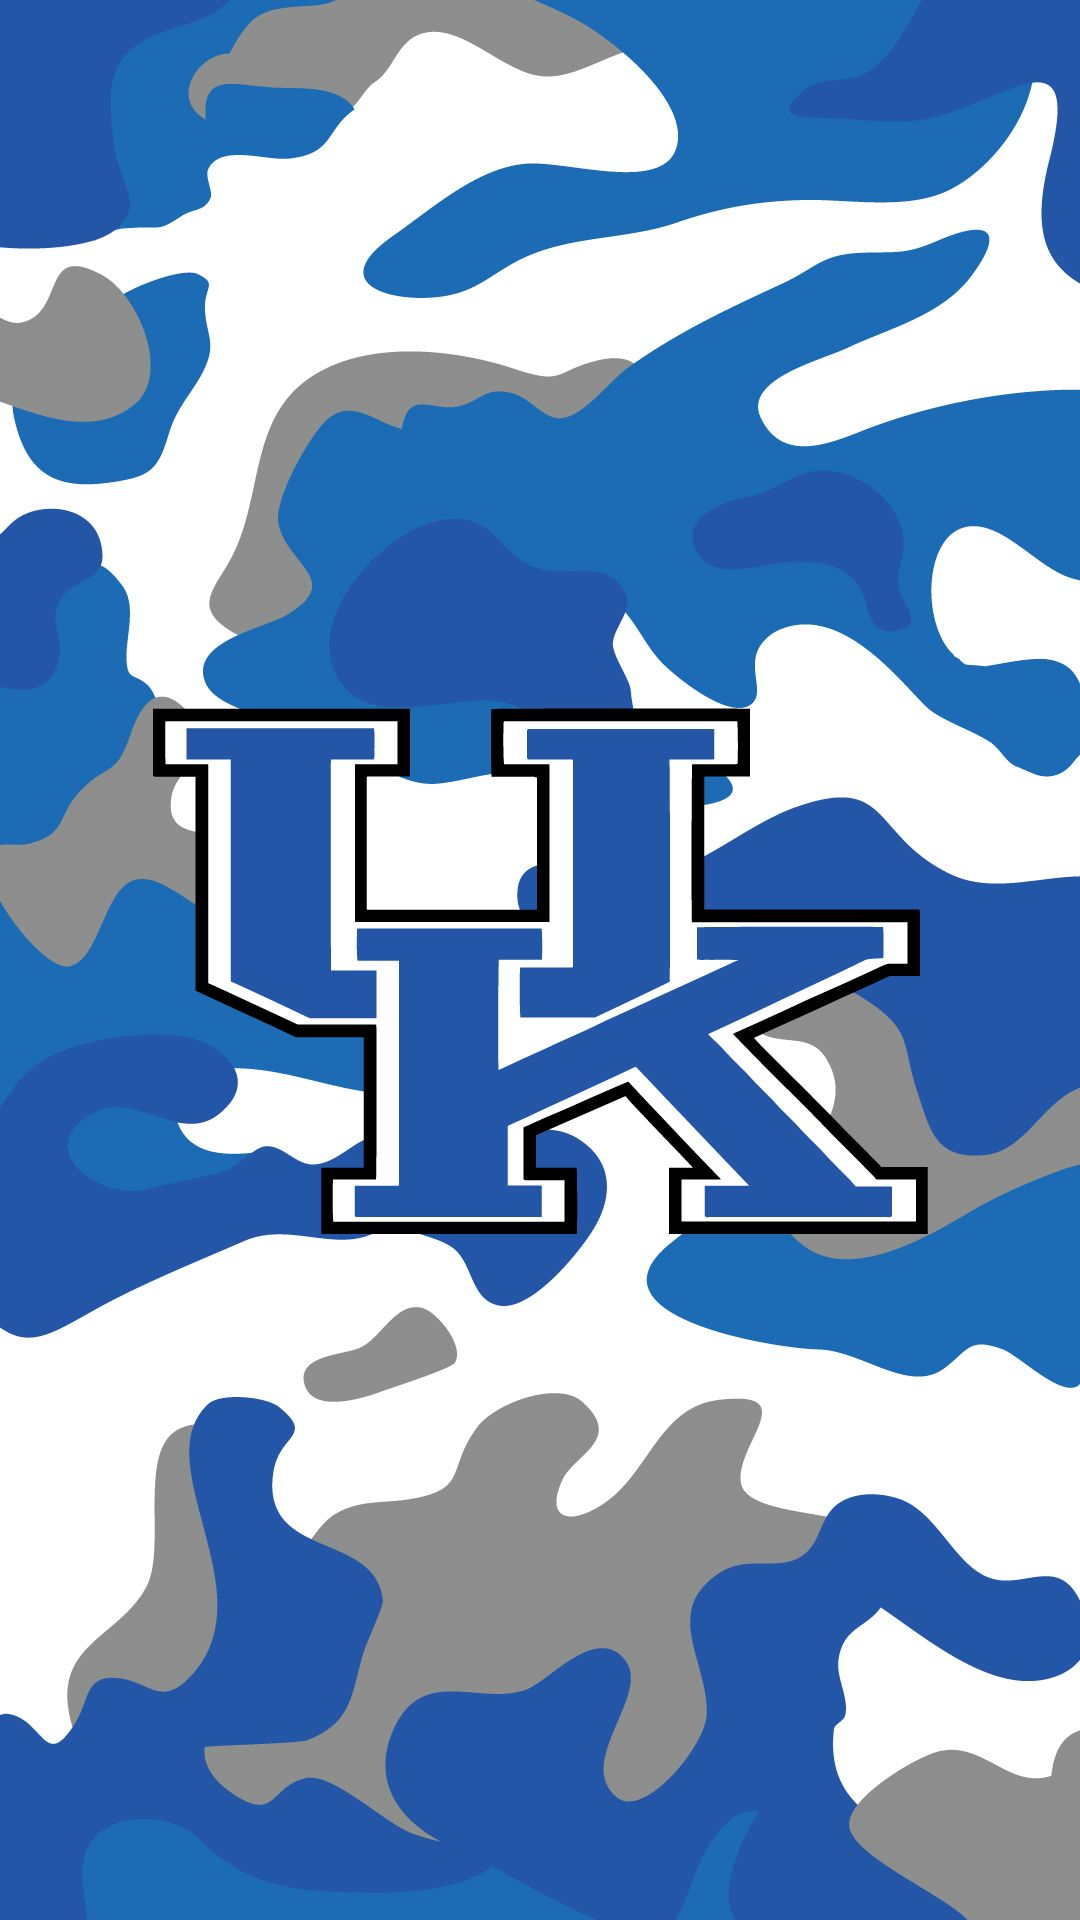 Kentucky Wildcats Wallpapers Download Free Kentucky Wildcats Basketball Wallpaper Kentucky Basketball Kentucky Wildcats